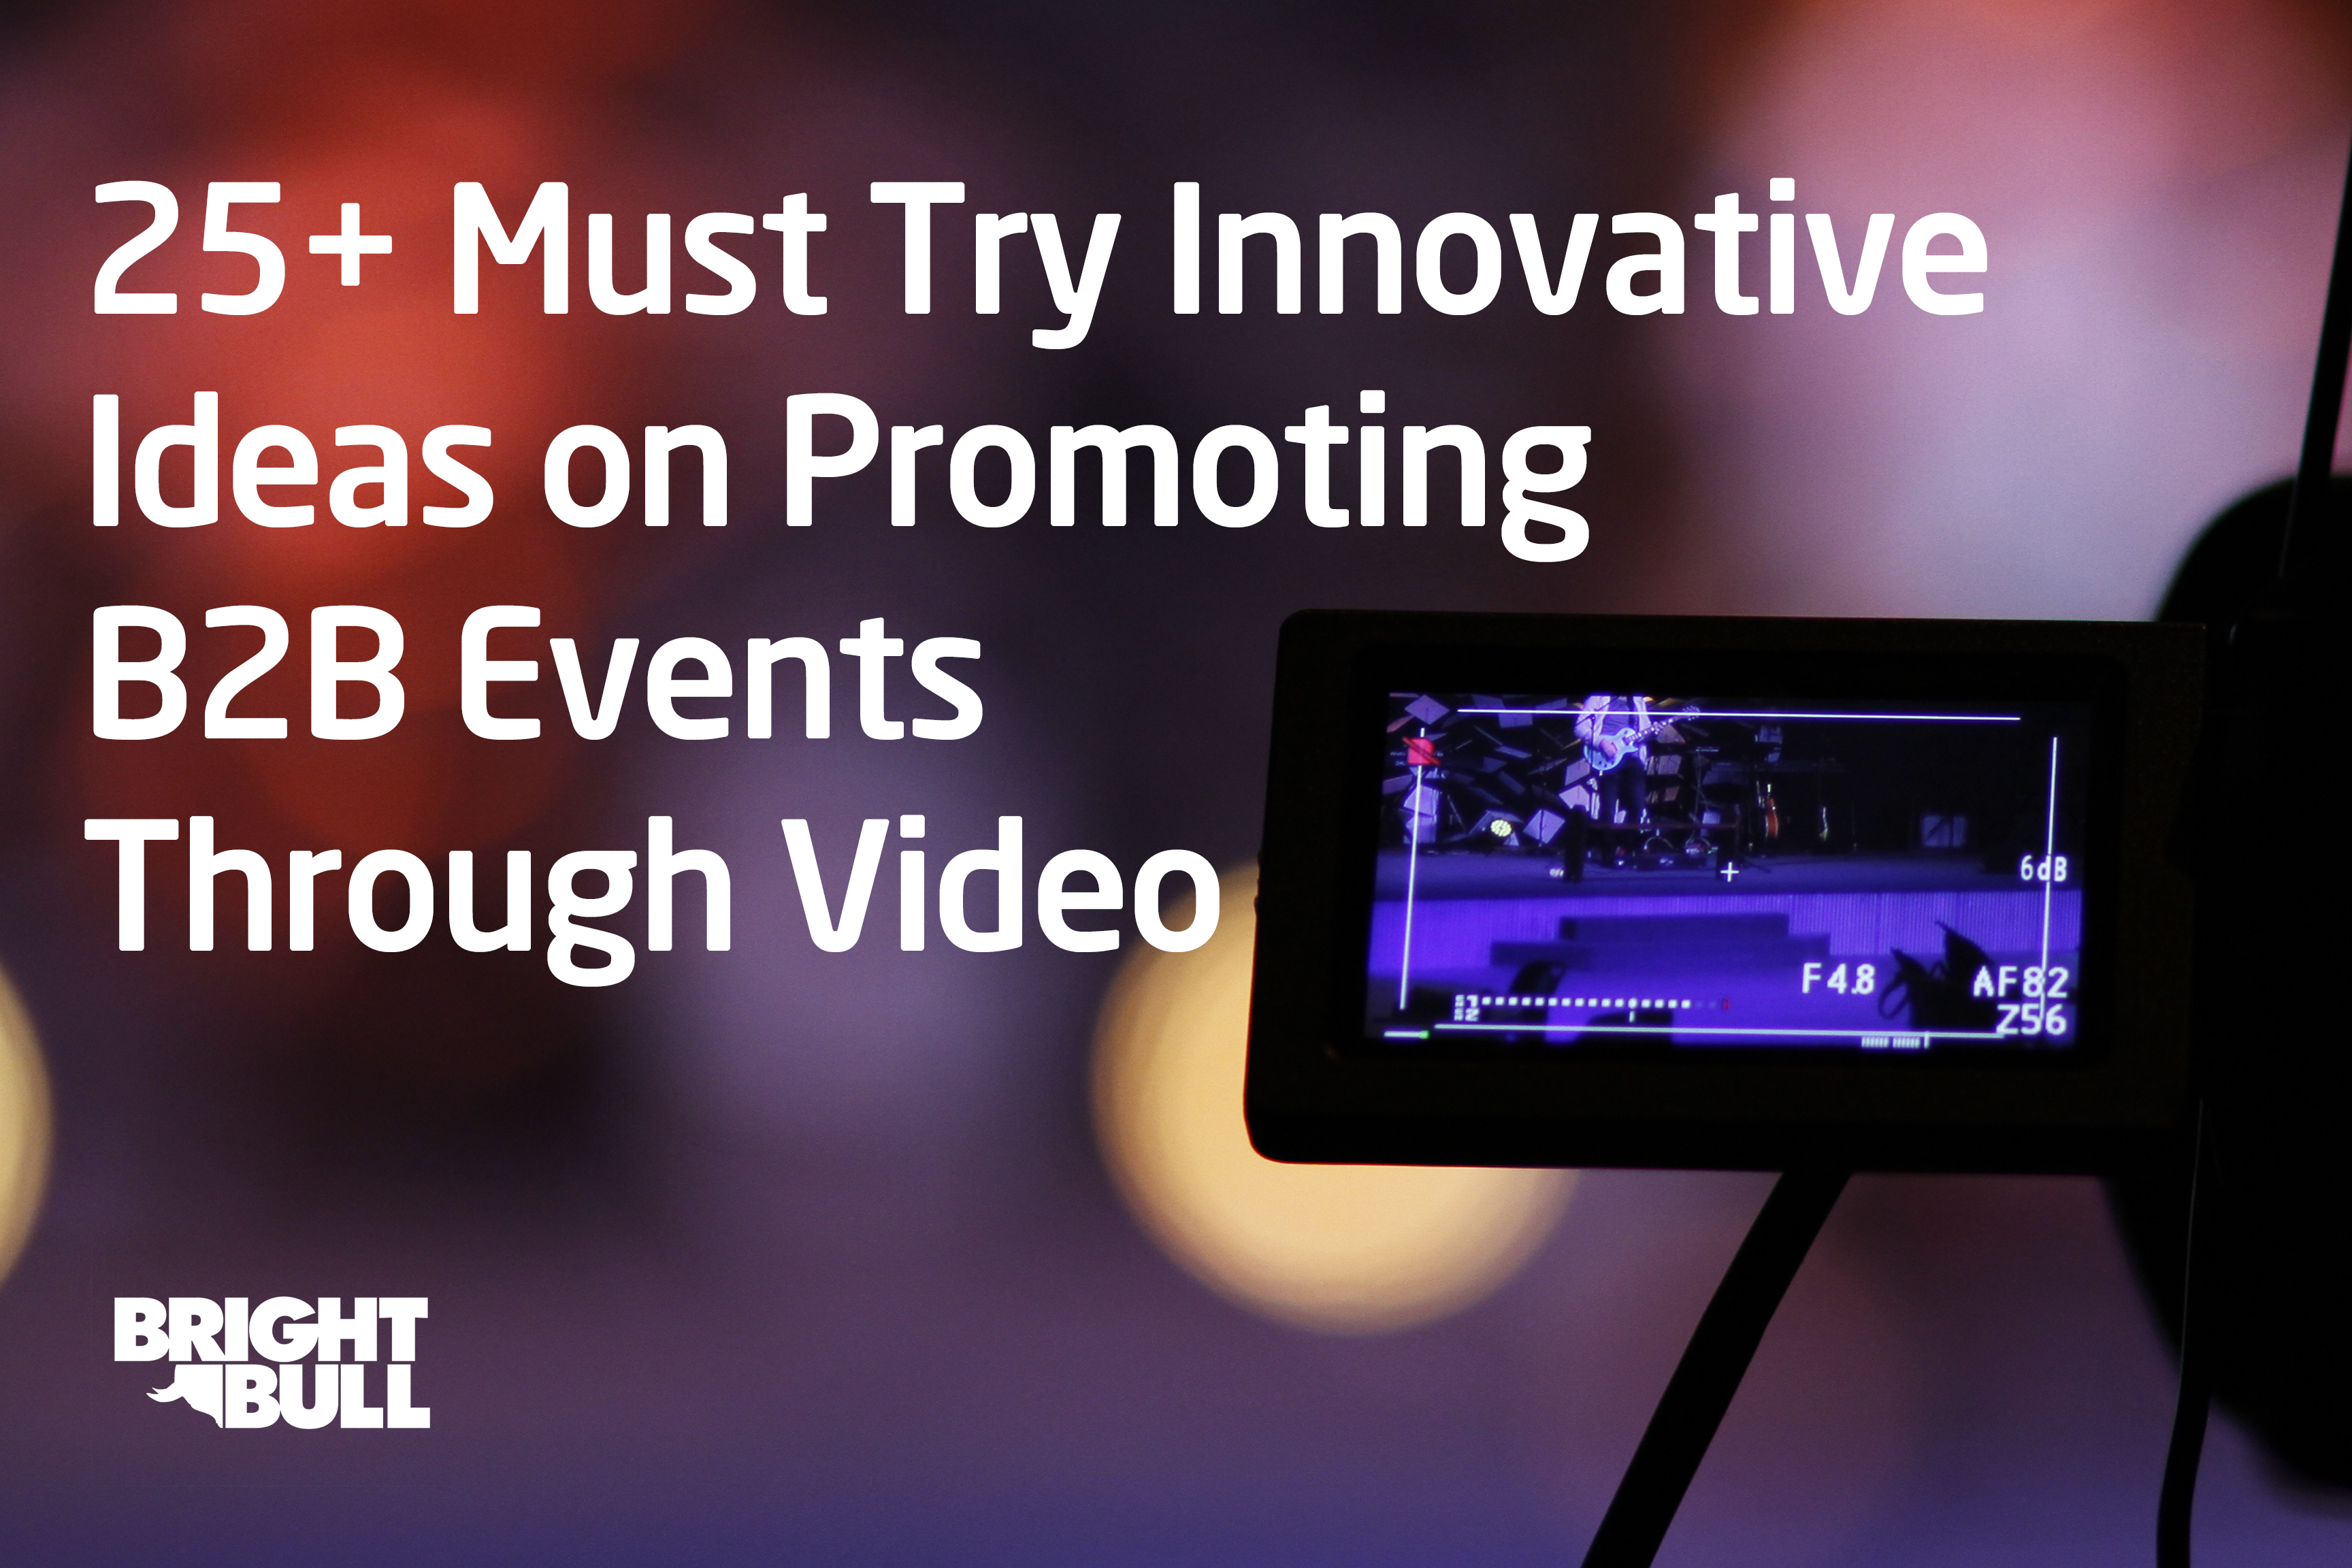 25-must-try-innovative-ideas-on-promoting-b2b-events-through-video